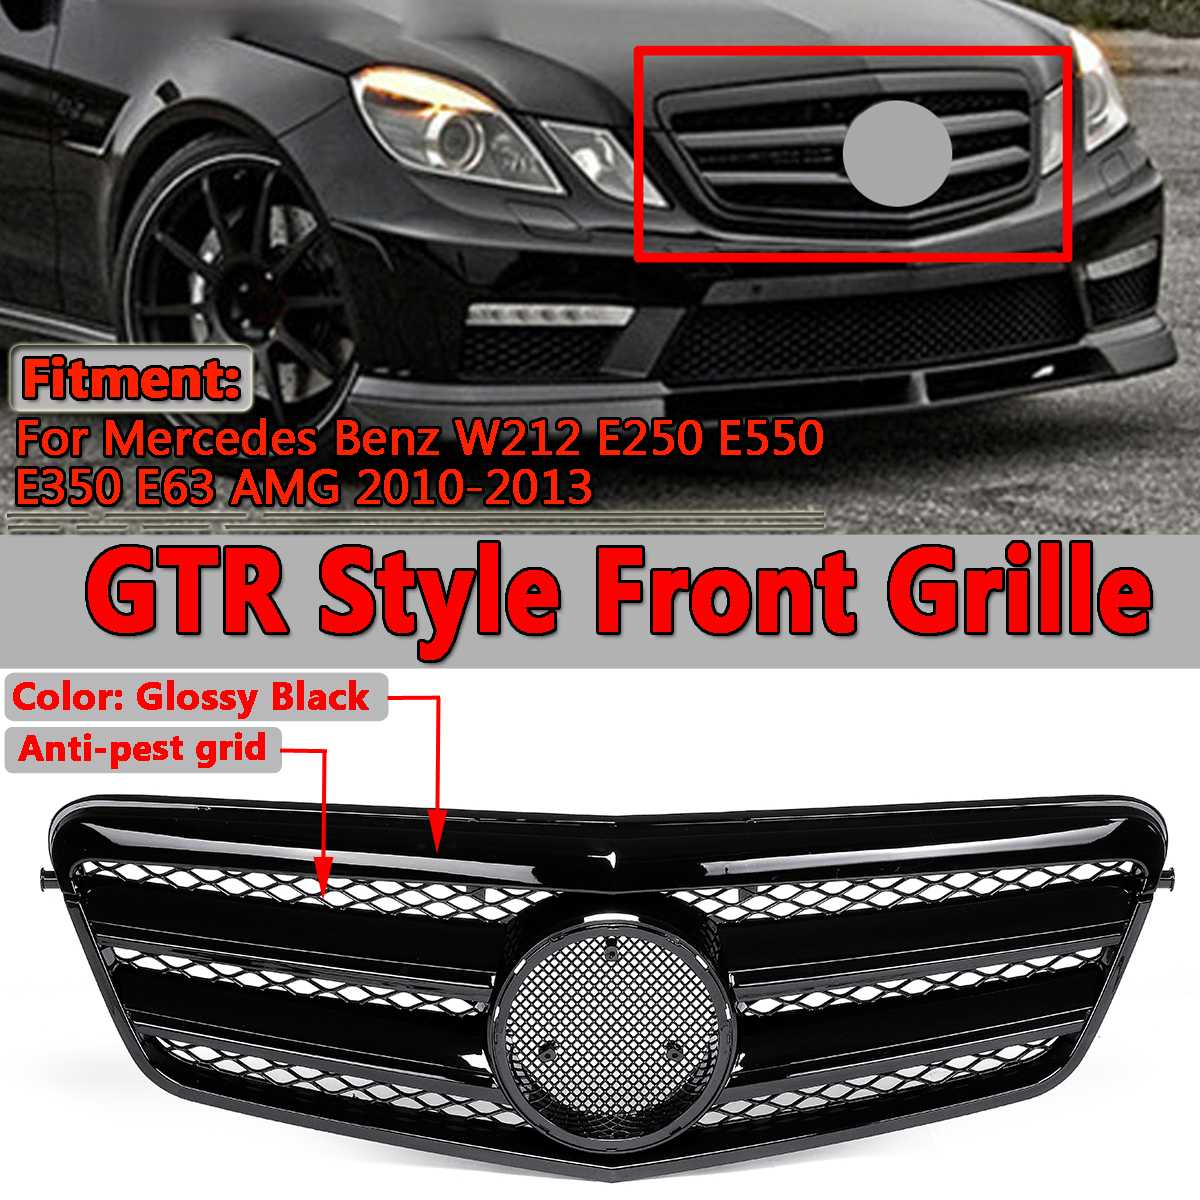 For AMG Style Car Front <font><b>Grill</b></font> Grille For <font><b>Mercedes</b></font> For Benz <font><b>W212</b></font> E250 E550 E350 E63 For AMG 2010-2013 Racing <font><b>Grills</b></font> Sedan 4Dr image